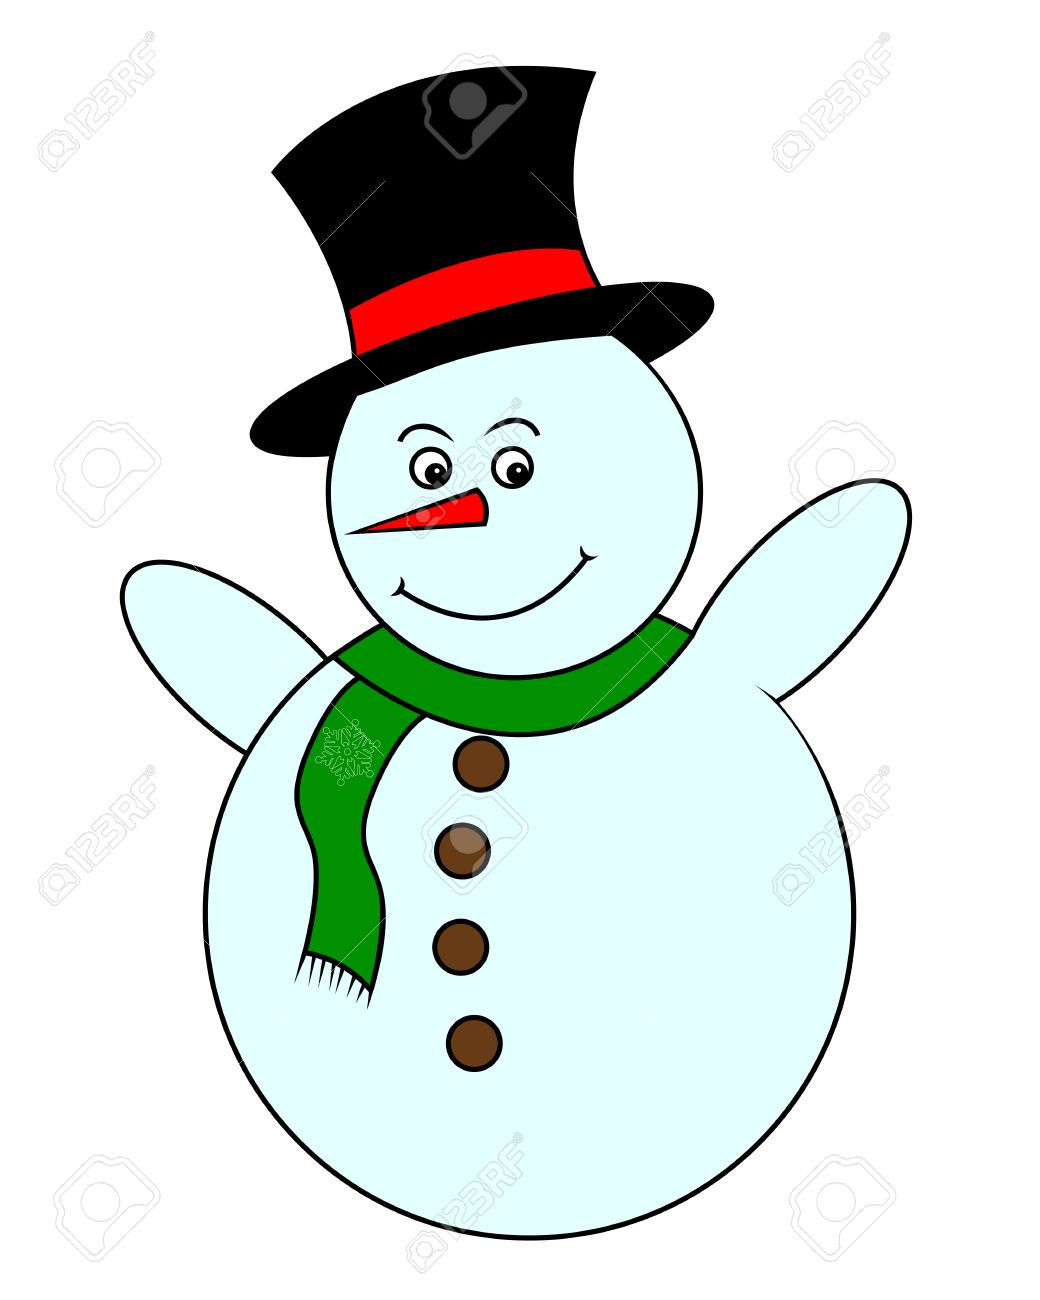 1040x1300 Drawing Christmas Snowman In Black Hatnd Green Scarf On